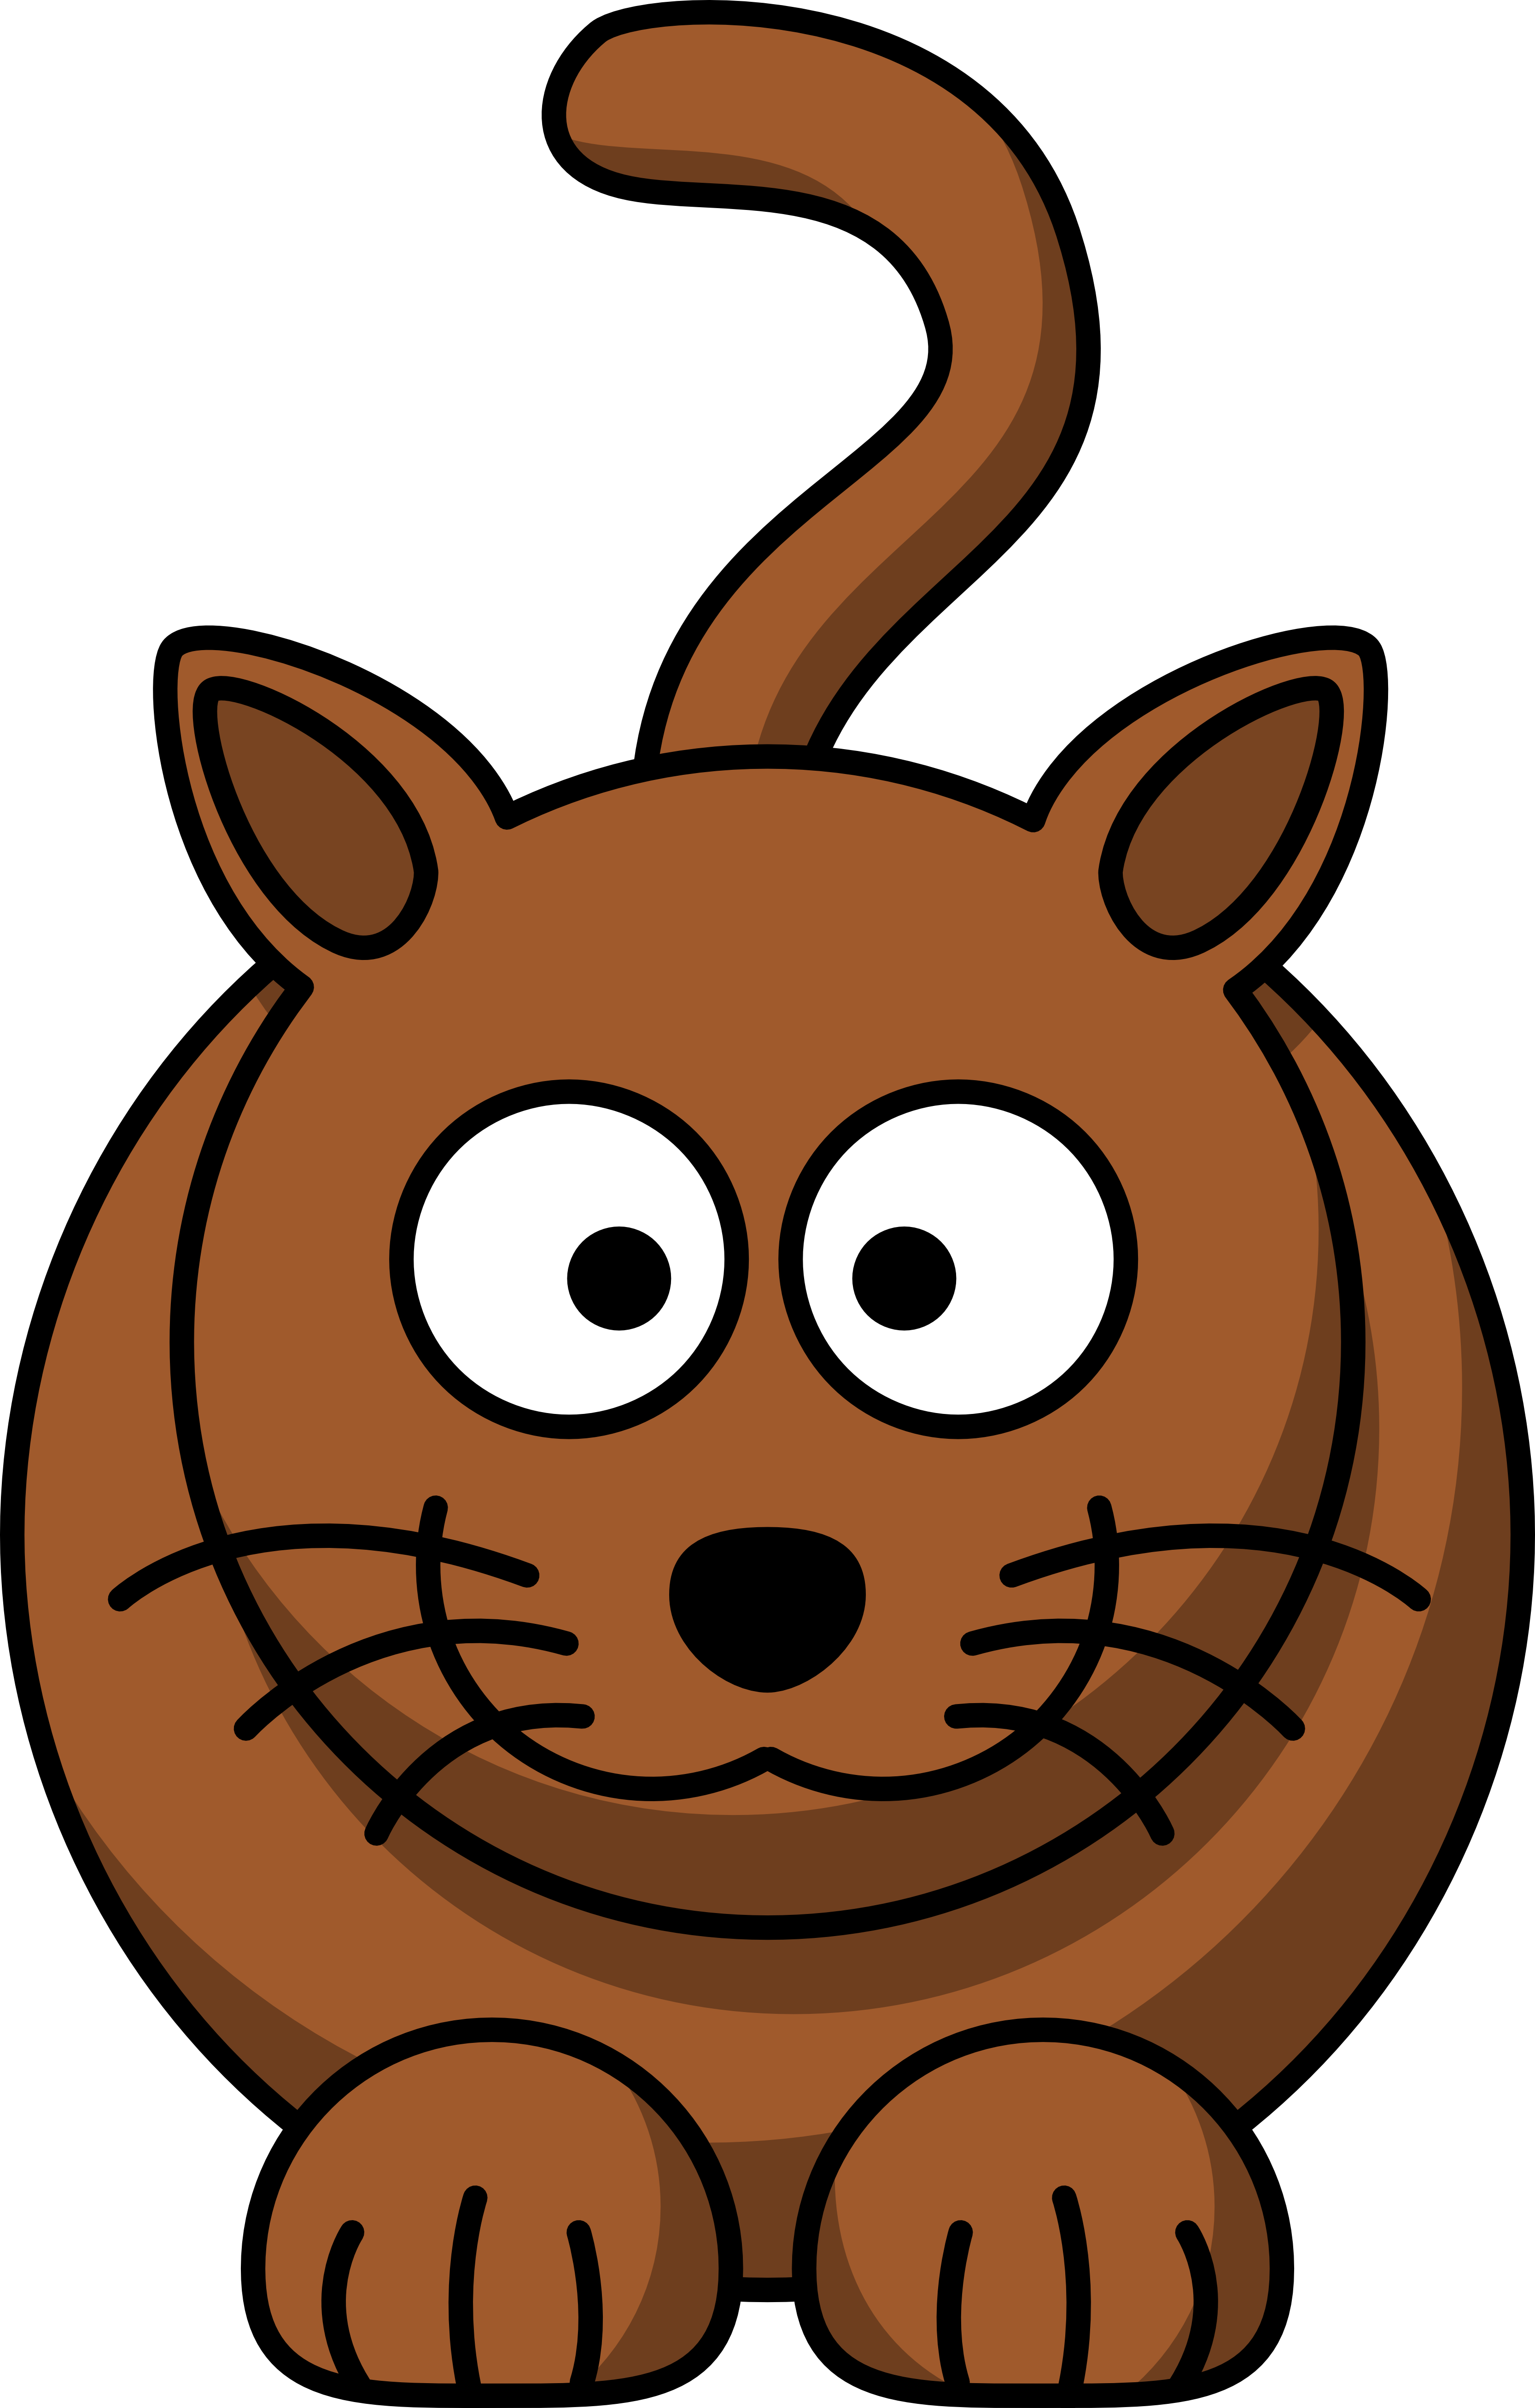 Brown cat clipart vector library Cartoon brown Cat Clipart free image vector library